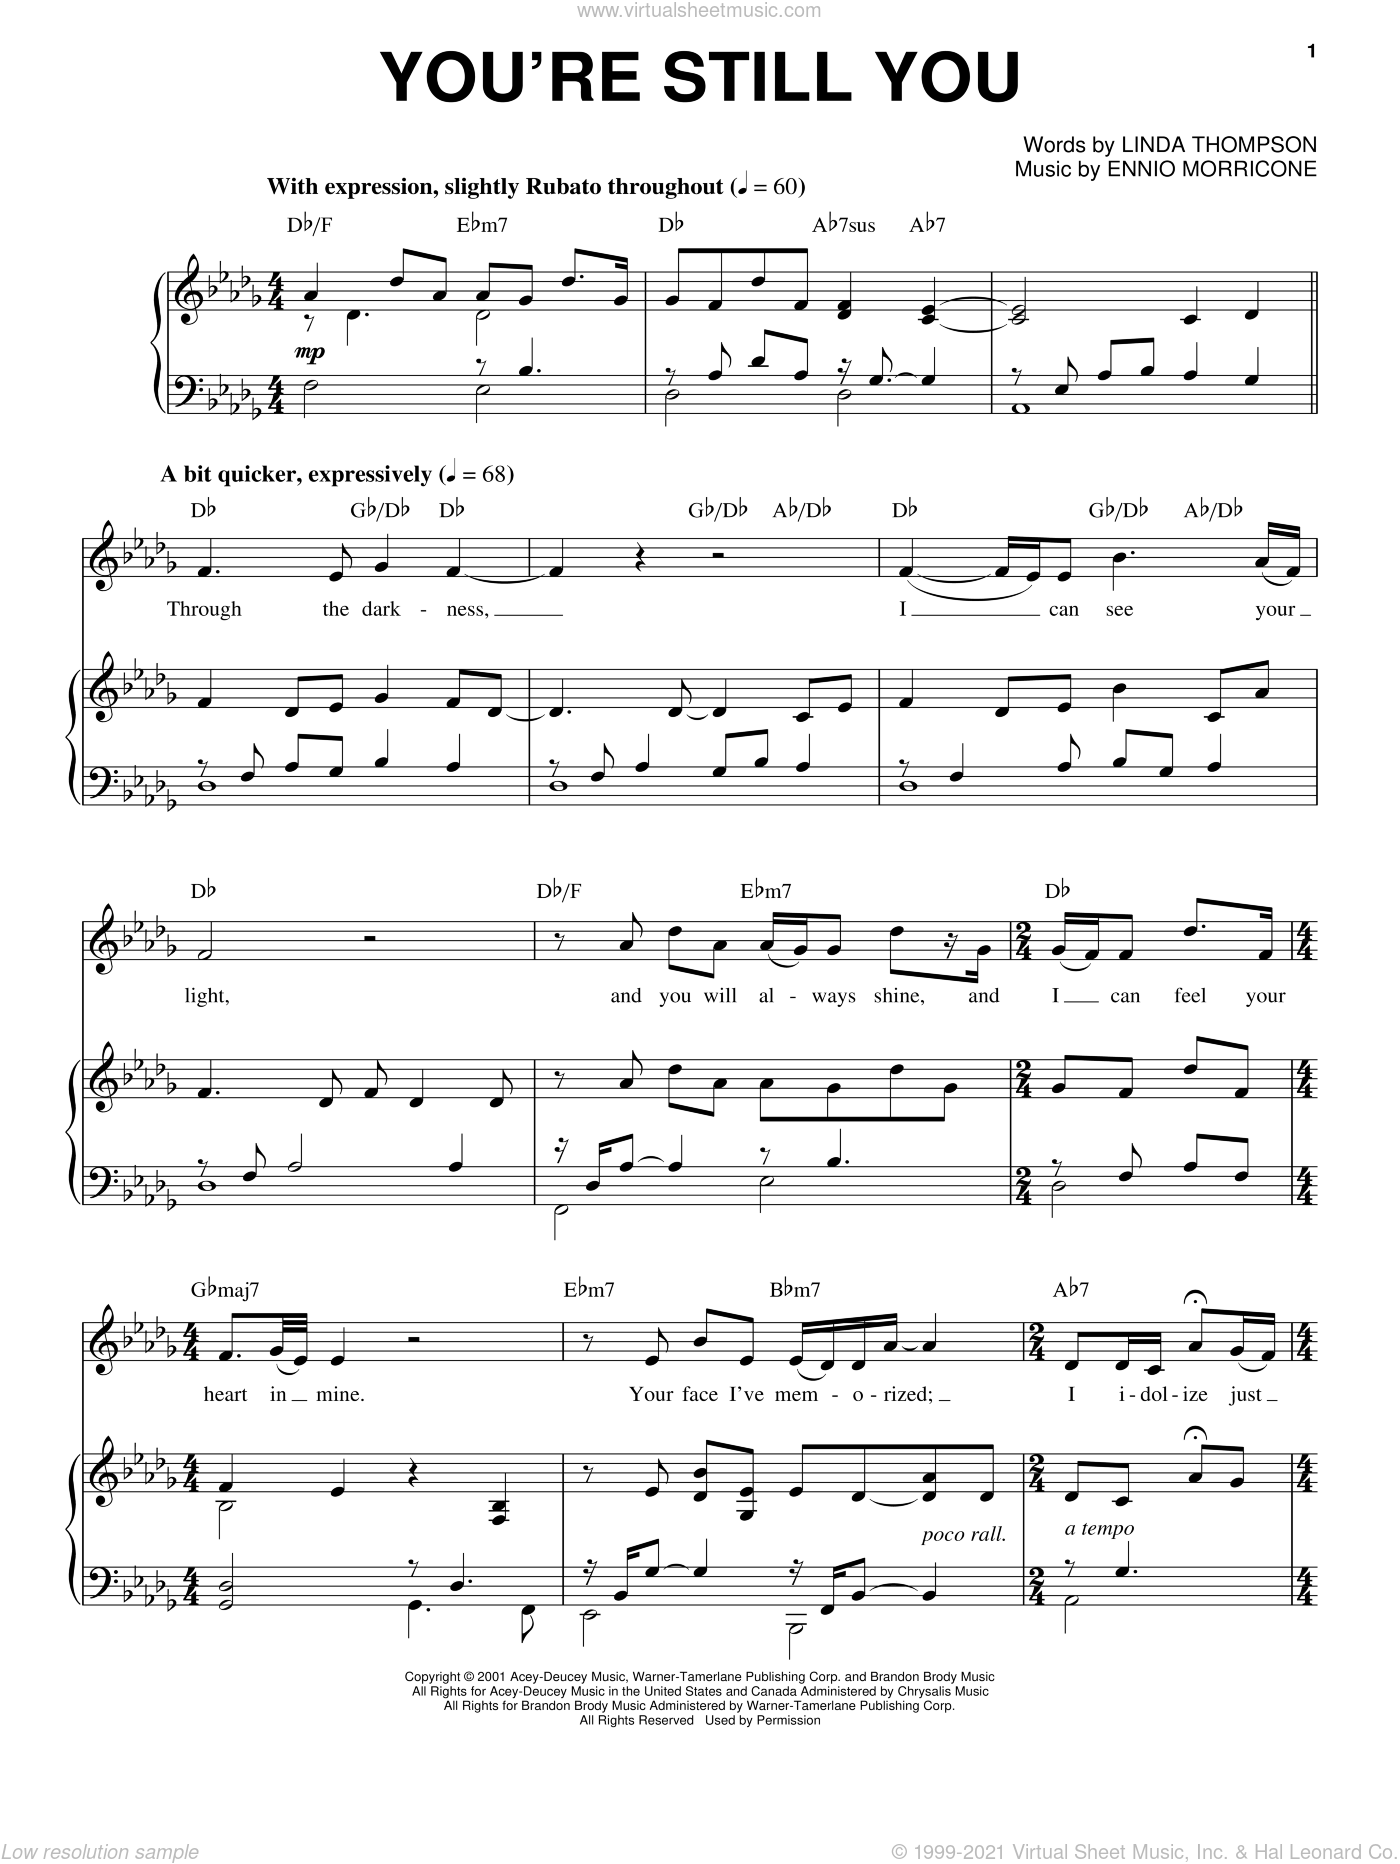 You're Still You sheet music for voice and piano by Linda Thompson, Josh Groban and Ennio Morricone. Score Image Preview.